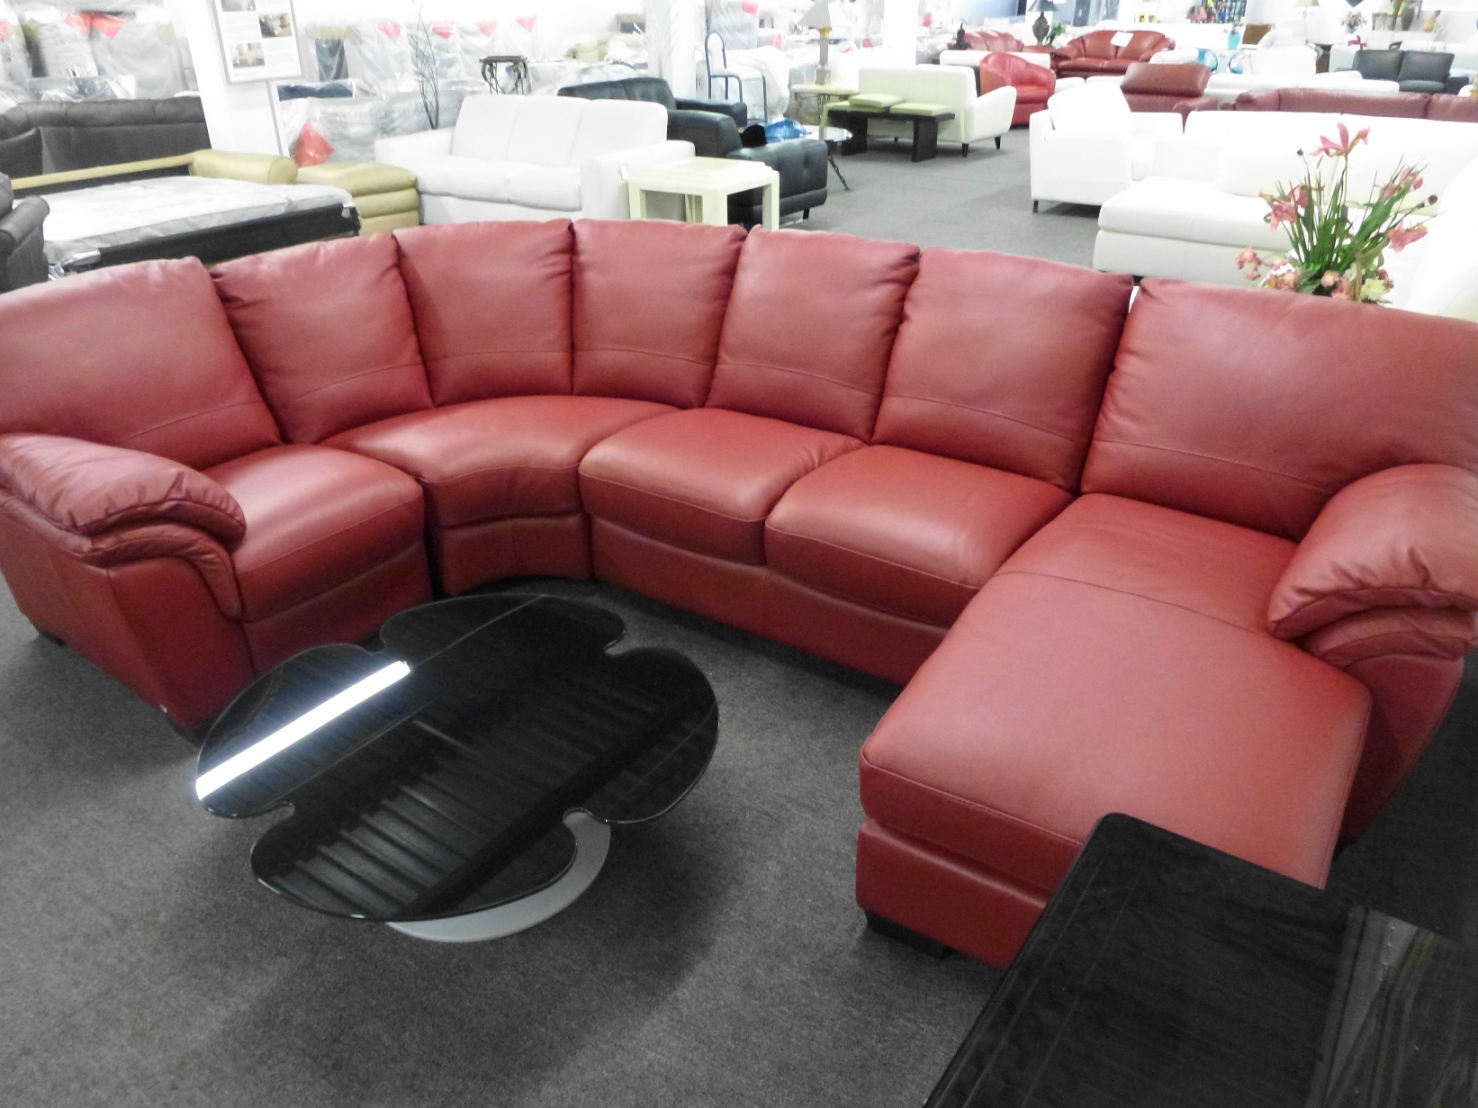 Shop our collection of natuzzi sofa at jordan's furniture ma, nh, ri and ct. Natuzzi Leather Sofas & Sectionals by Interior Concepts ...